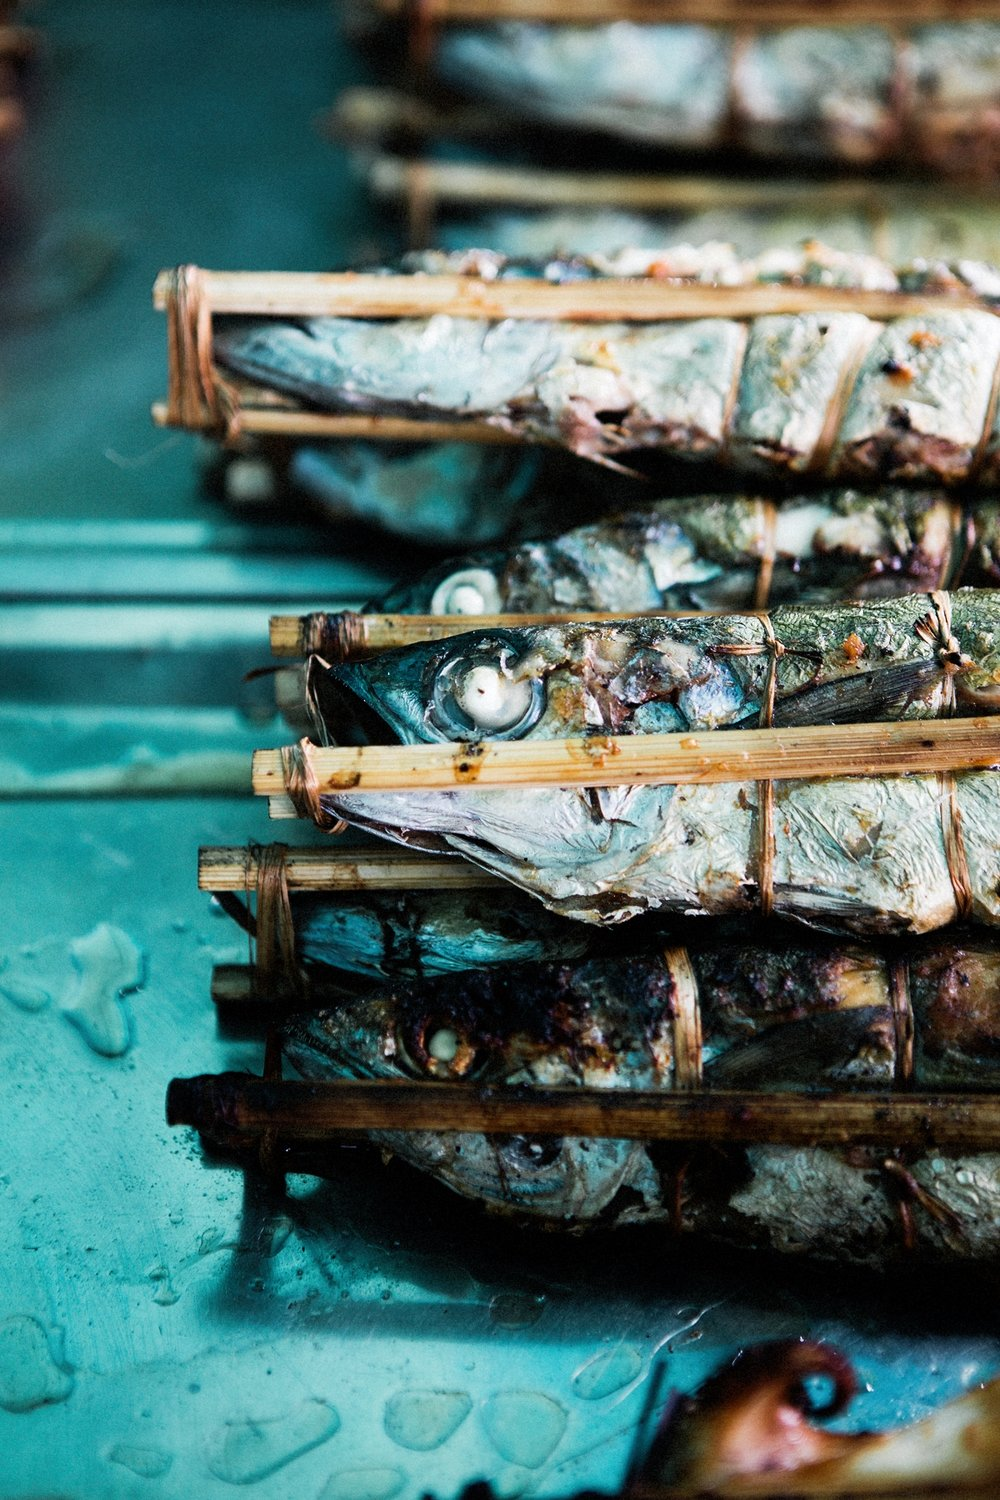 You can also buy barbecued fish at the market and enjoy it together with the crab